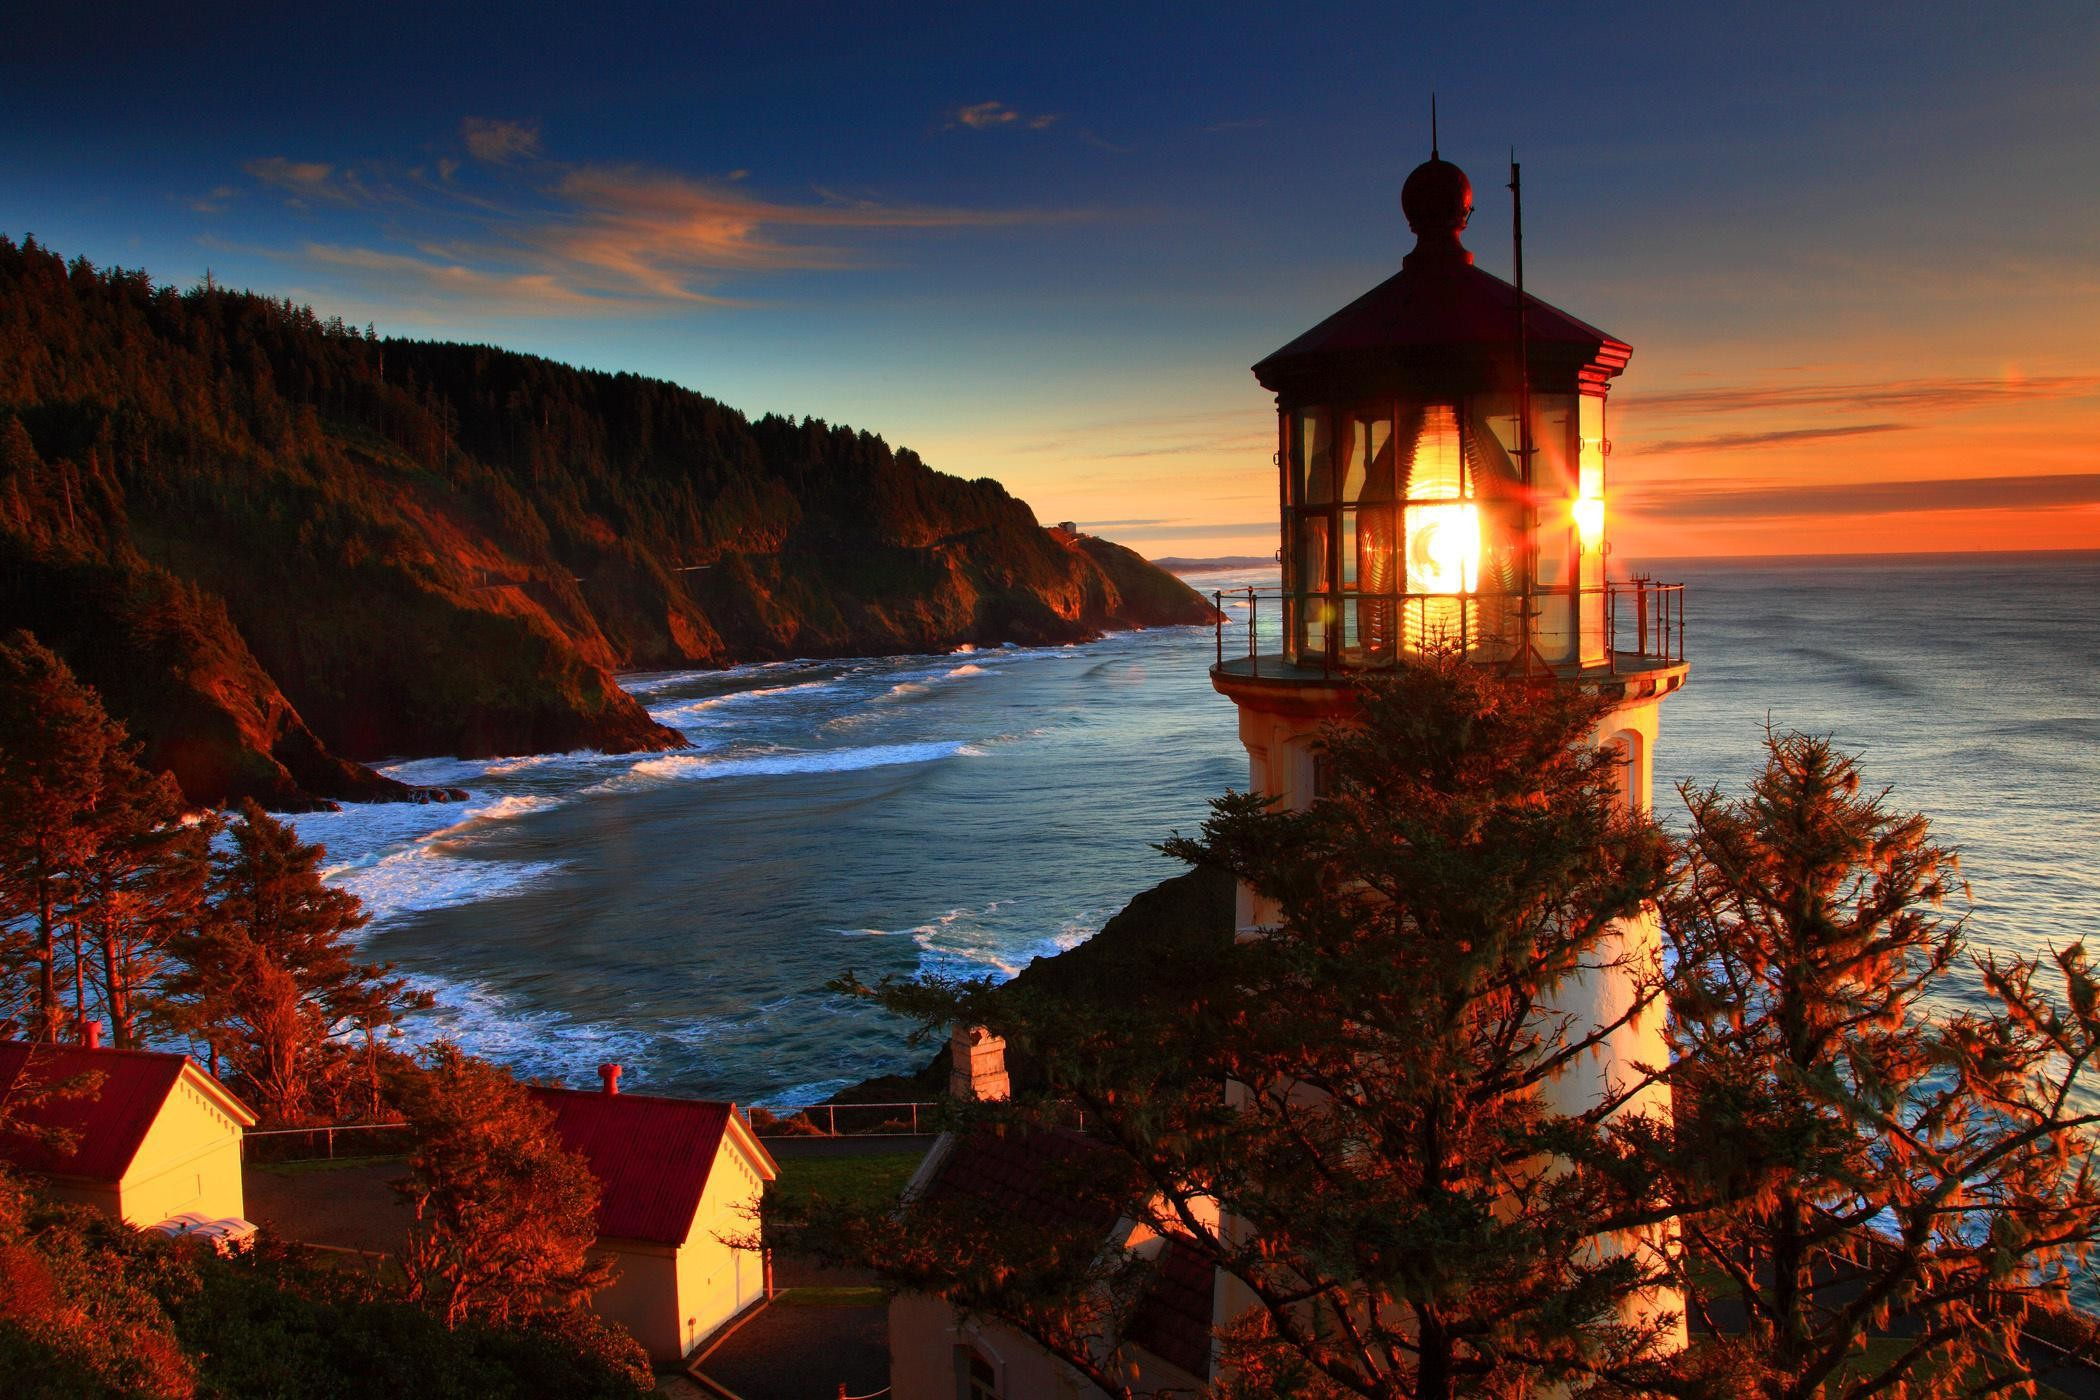 2100x1400 Oregon Coast Sea Lighthouse Sunset Landscape Ocean Sunrise Autumn Cool